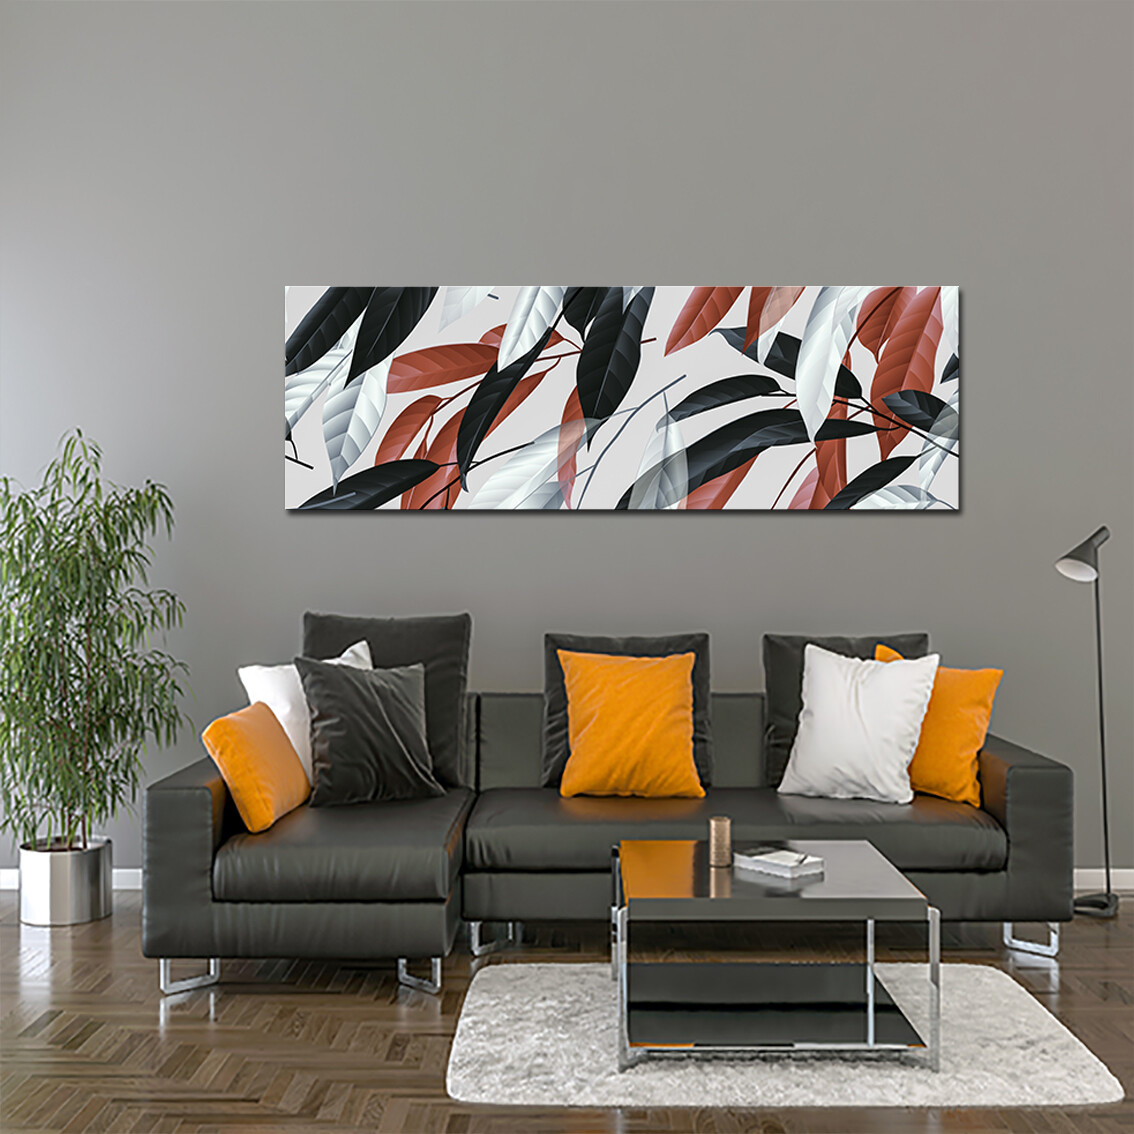 Leaves Panoramic Art  - Modern Luxury Wall art Printed on Acrylic Glass - Frameless and Ready to Hang